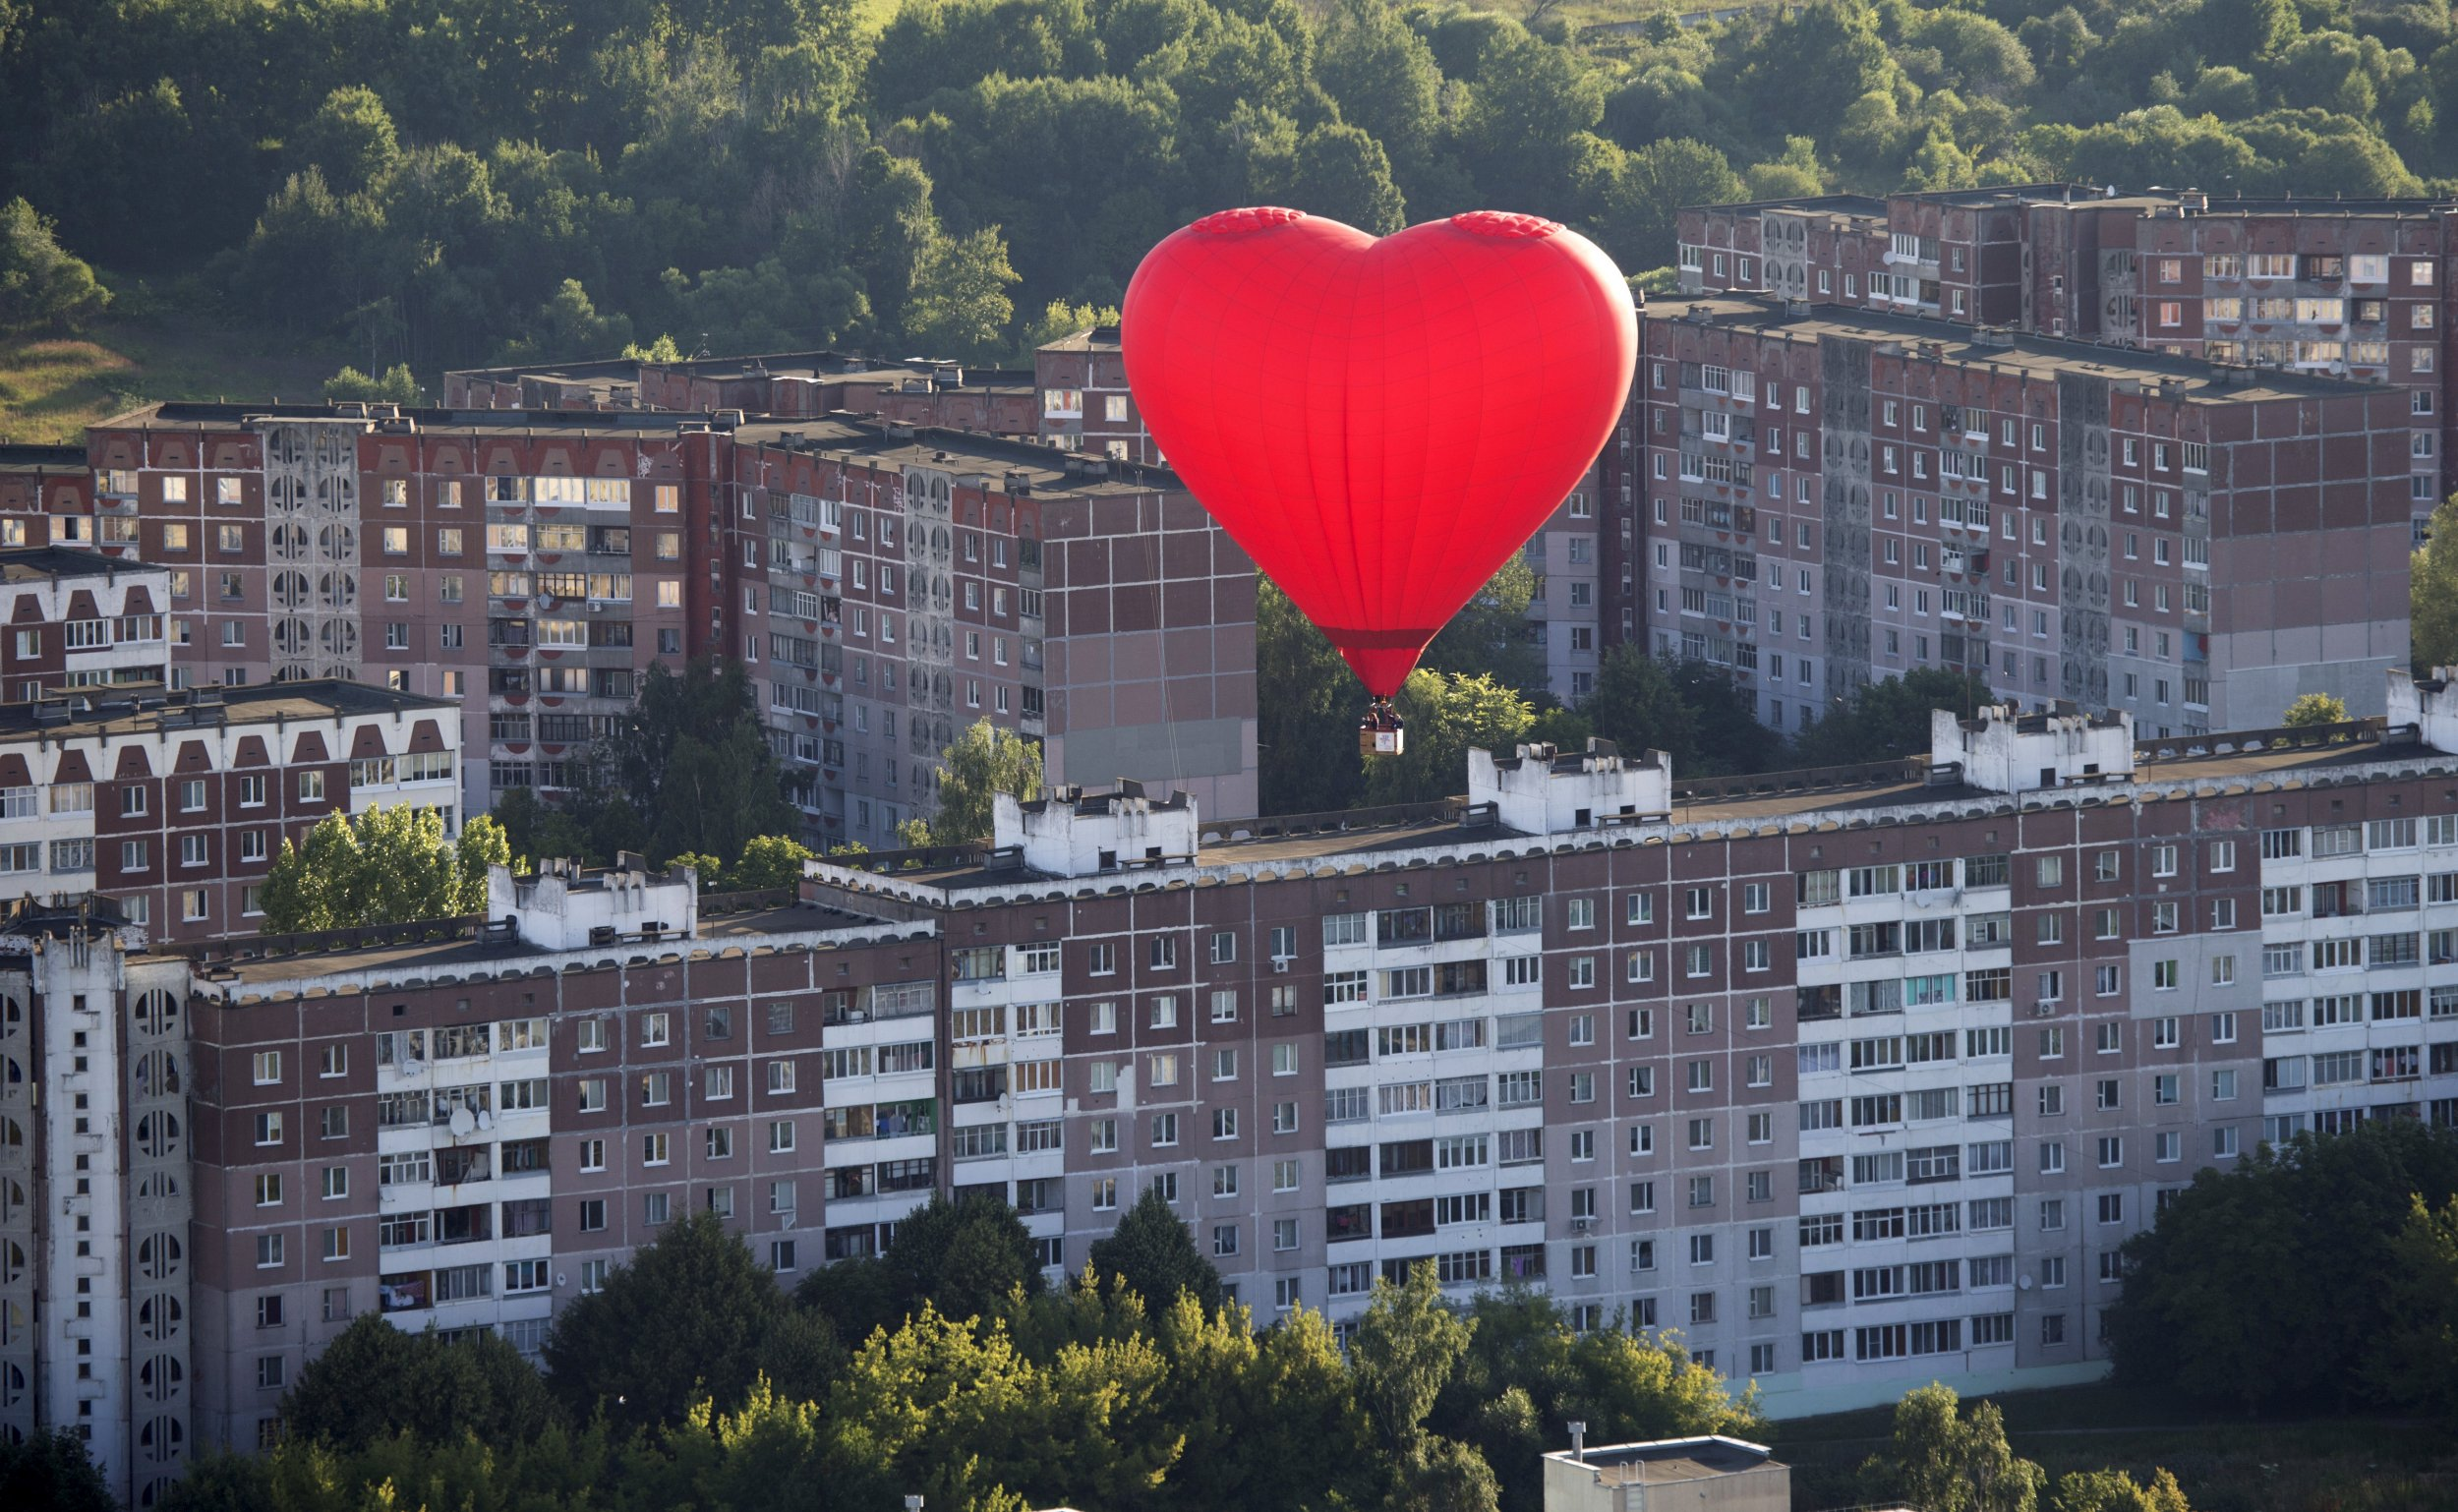 Heartshaped hot air balloon flies above communist buildings